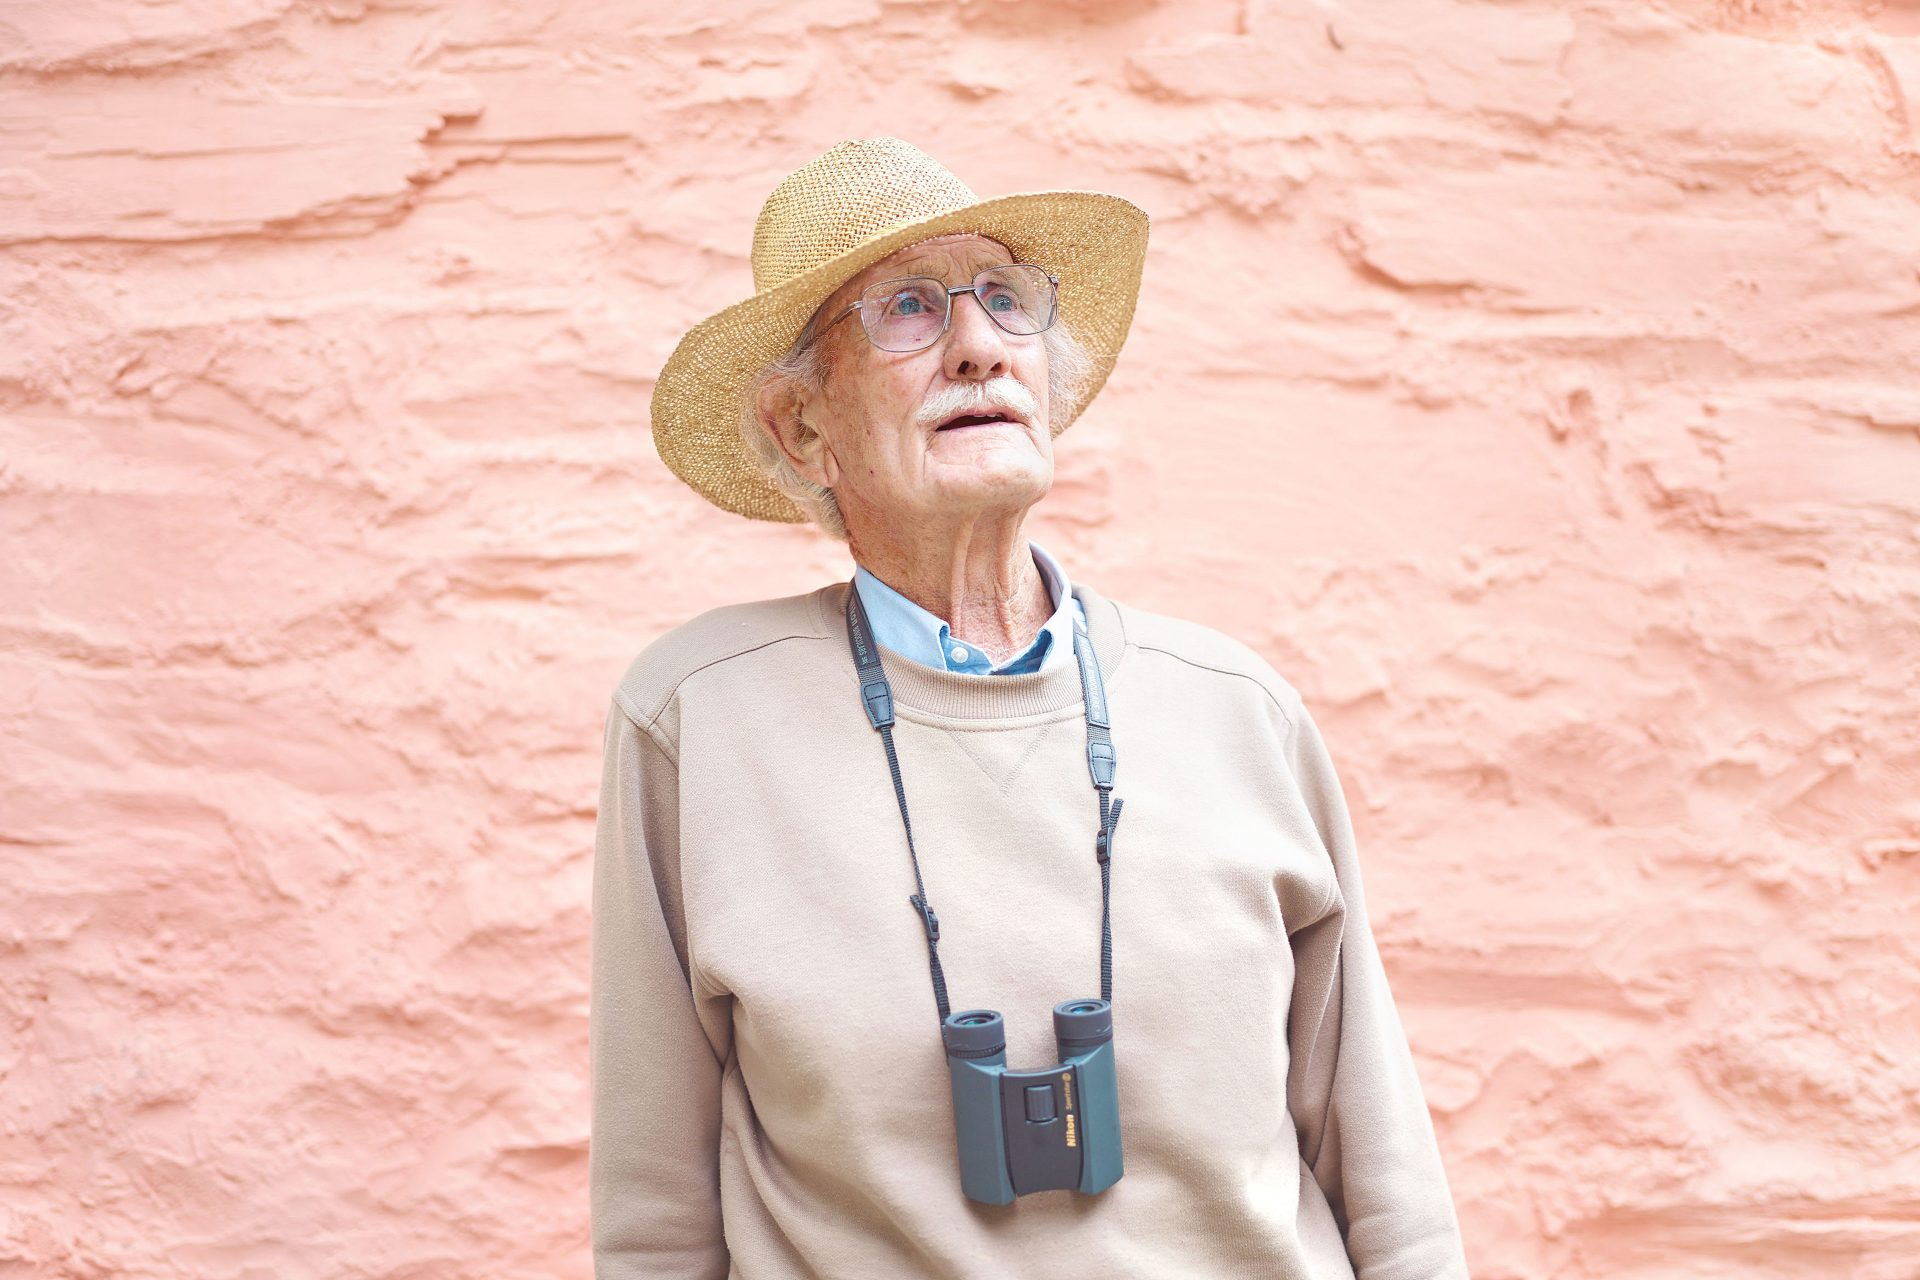 old man in straw hat day tripper with binoculars pink wall  – Shaw and Shaw Advertising photographers Manchester photographer – Shaw & Shaw Photography – Skiddle